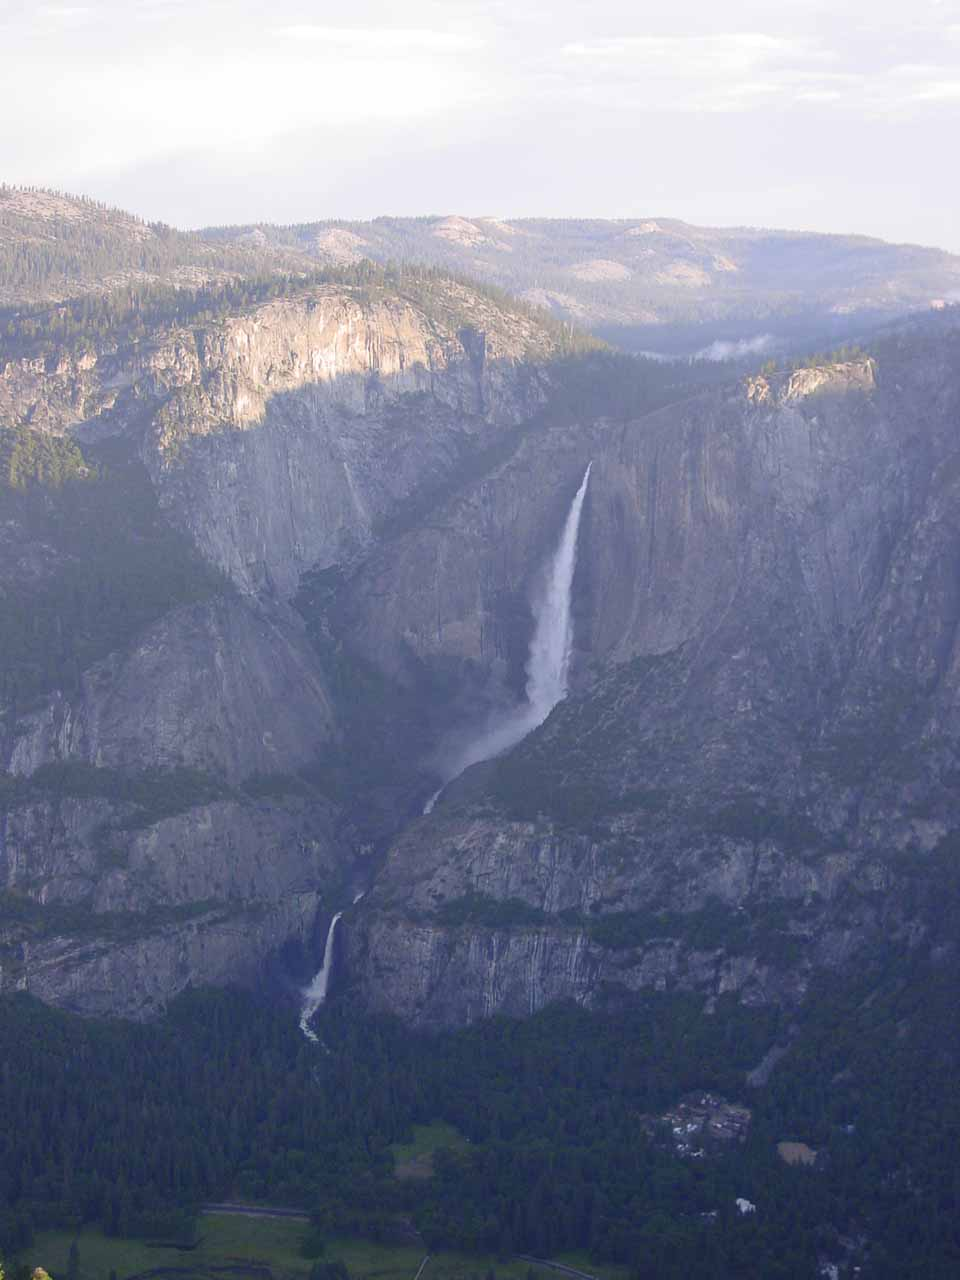 Yosemite Falls from Glacier Point at sunrise in June 2002